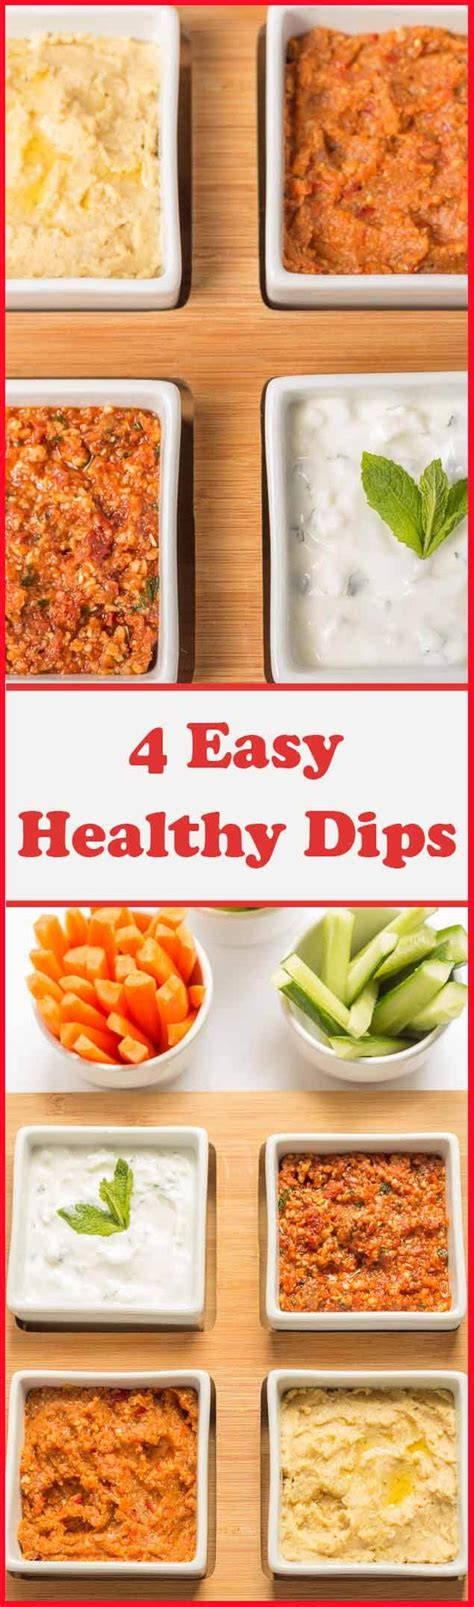 4 easy healthy dips to make neils healthy meals